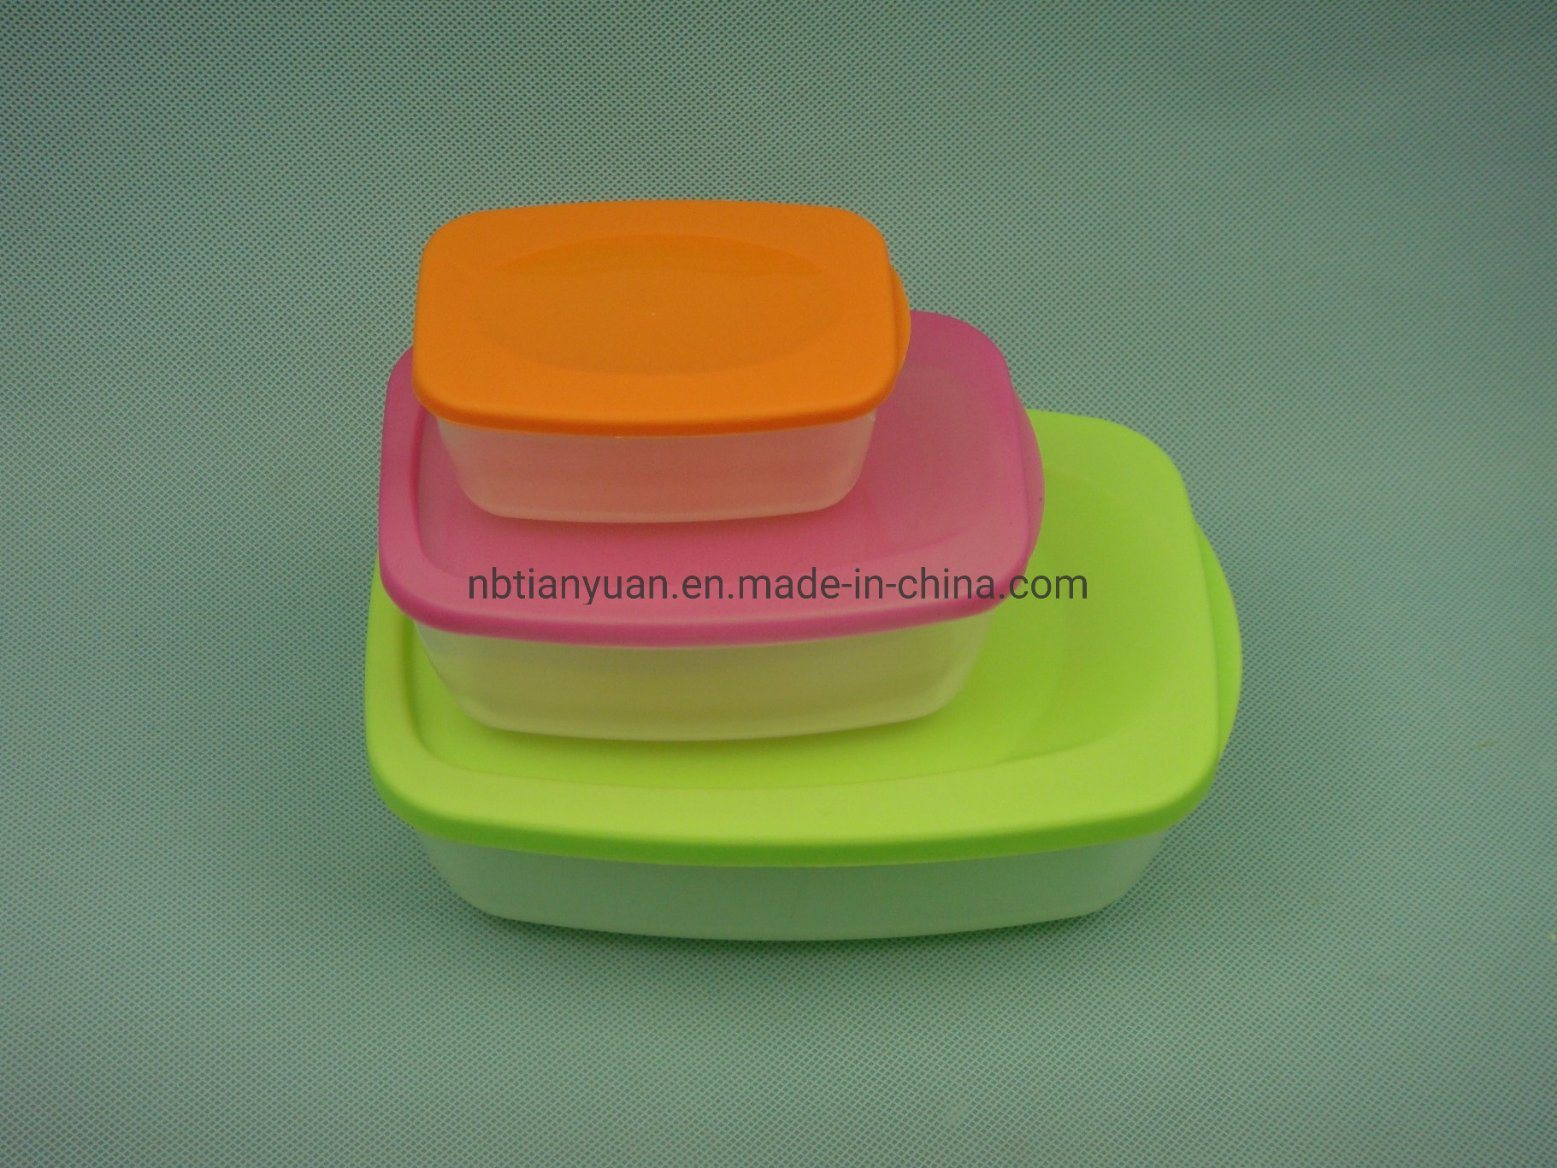 Plastic Food Storage Container Box Sets pictures & photos